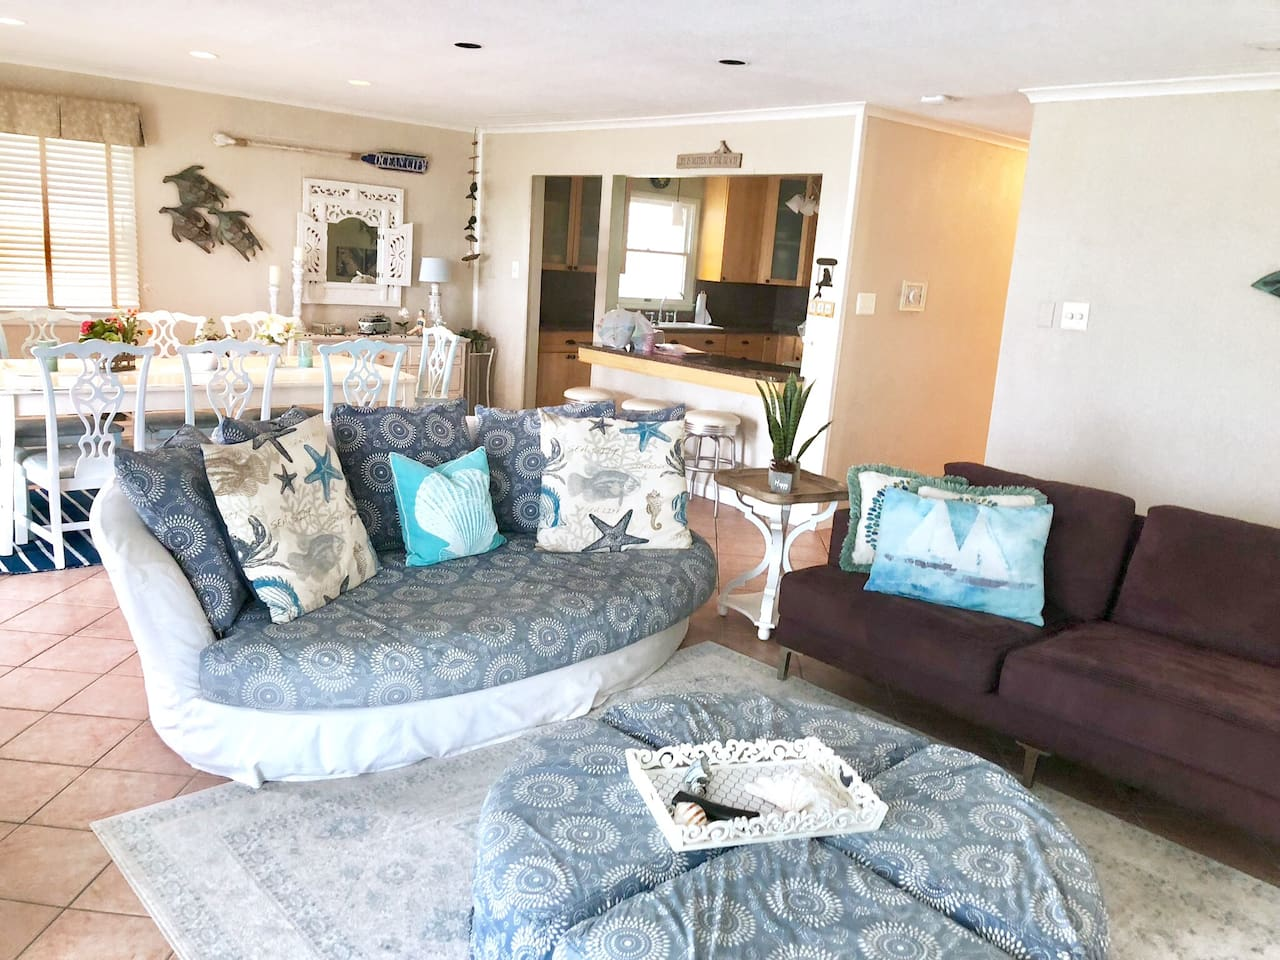 Extra Wide Living Room/ dining room / kitchen area keeps families gathered with its comfy couches, working fireplace,  60 inch flat screen TV with voice activated remote & games in the drawers!